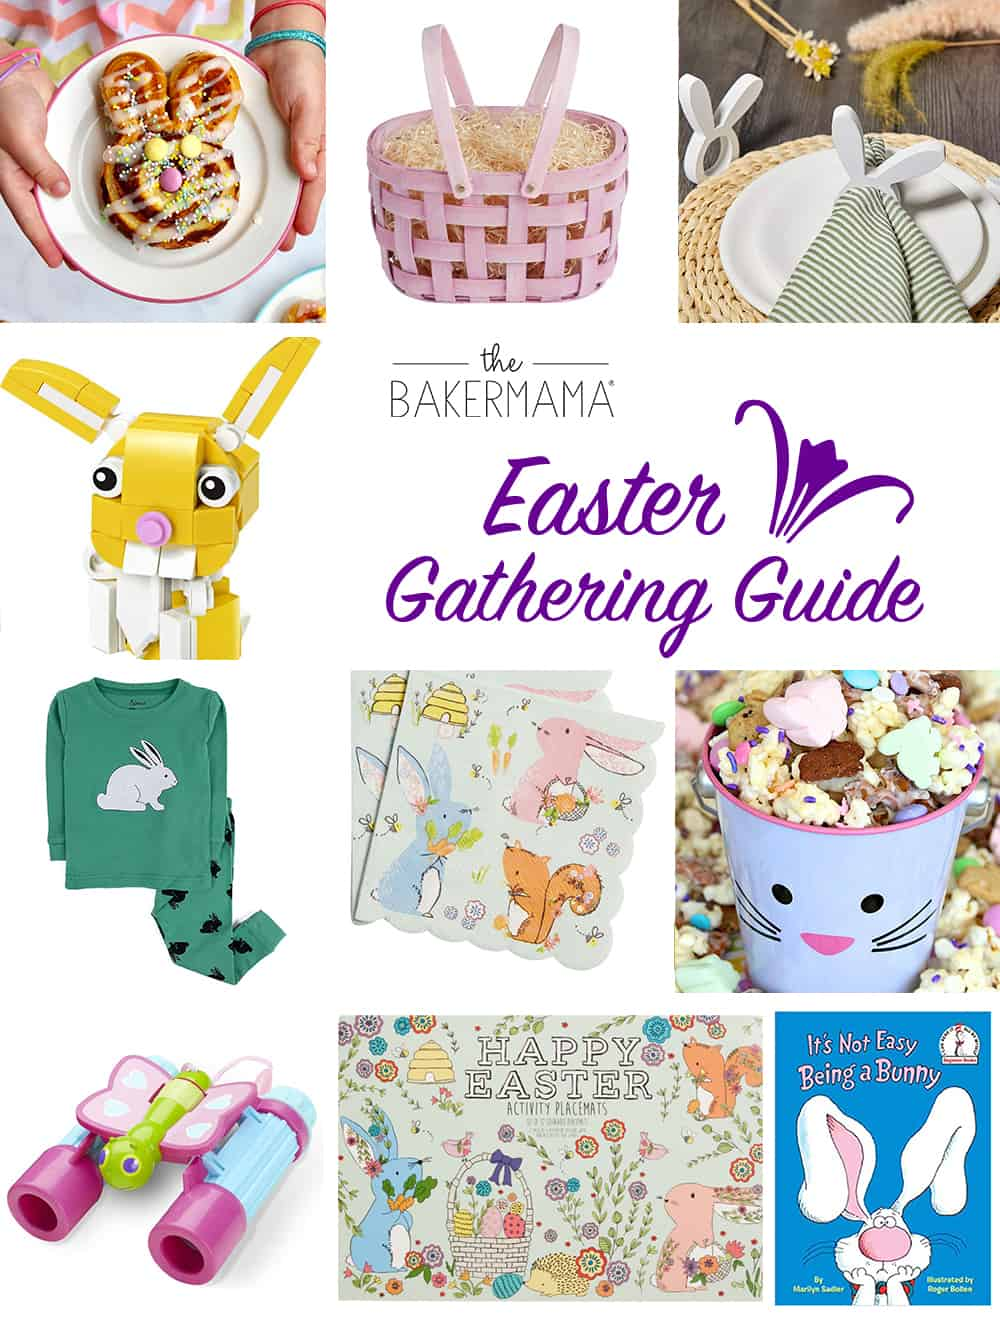 Easter Gathering Guide by The BakerMama